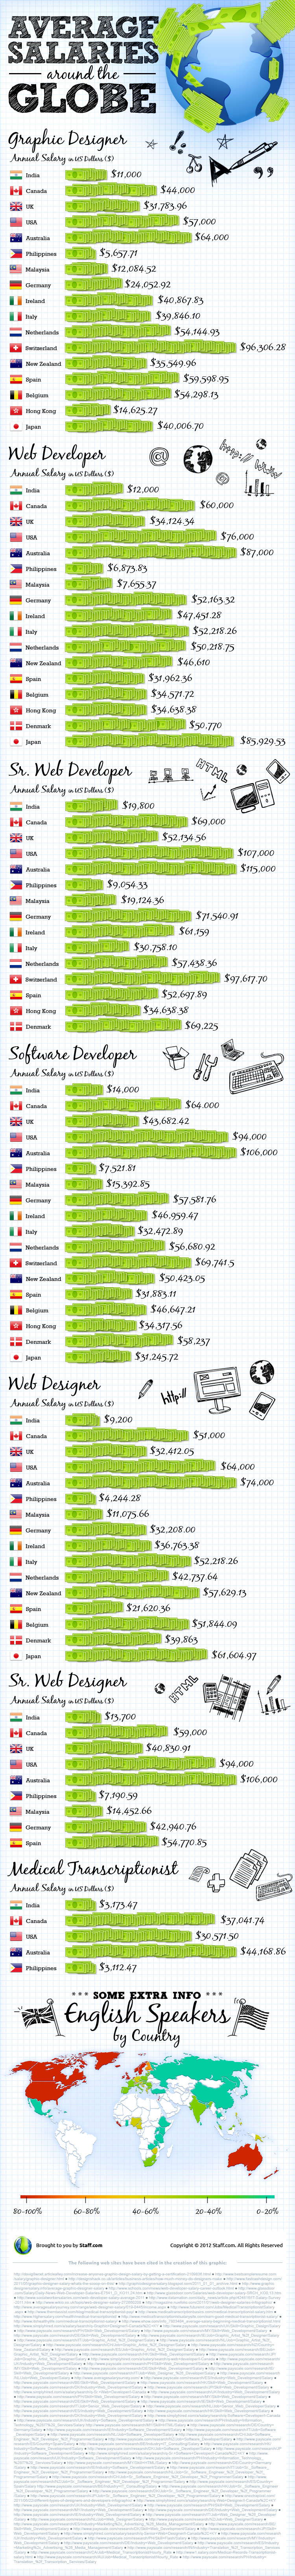 infographic-average-salaries-around-the-globe